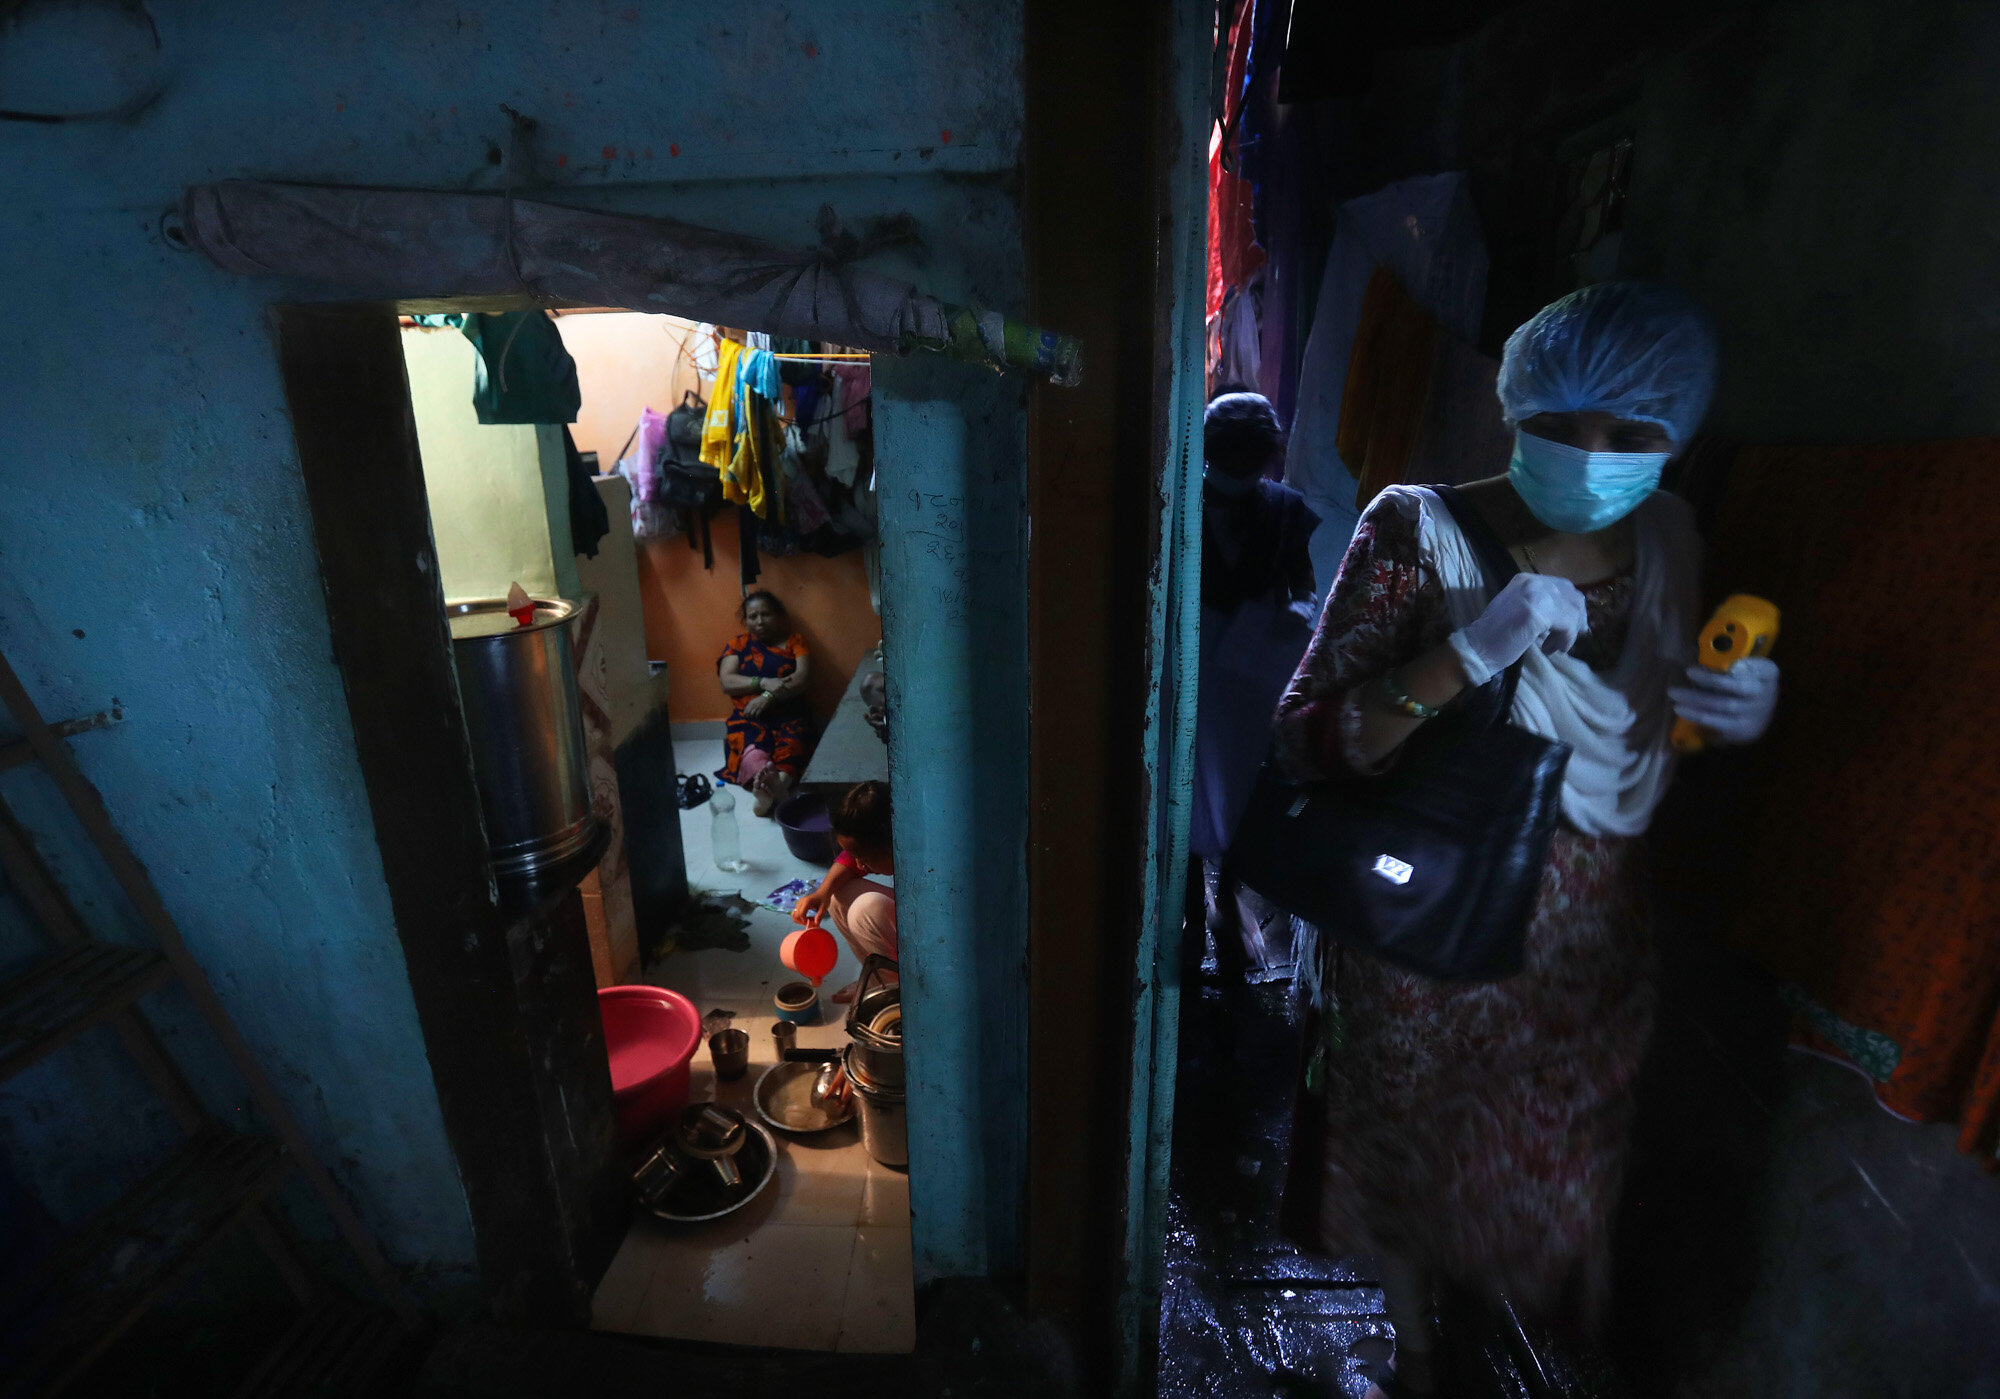 A health worker arrives to screen people for symptoms of COVID-19 on Sept. 4, 2020, in Dharavi, one of Asia's biggest slums, in Mumbai, India. (AP Photo/Rafiq Maqbool)